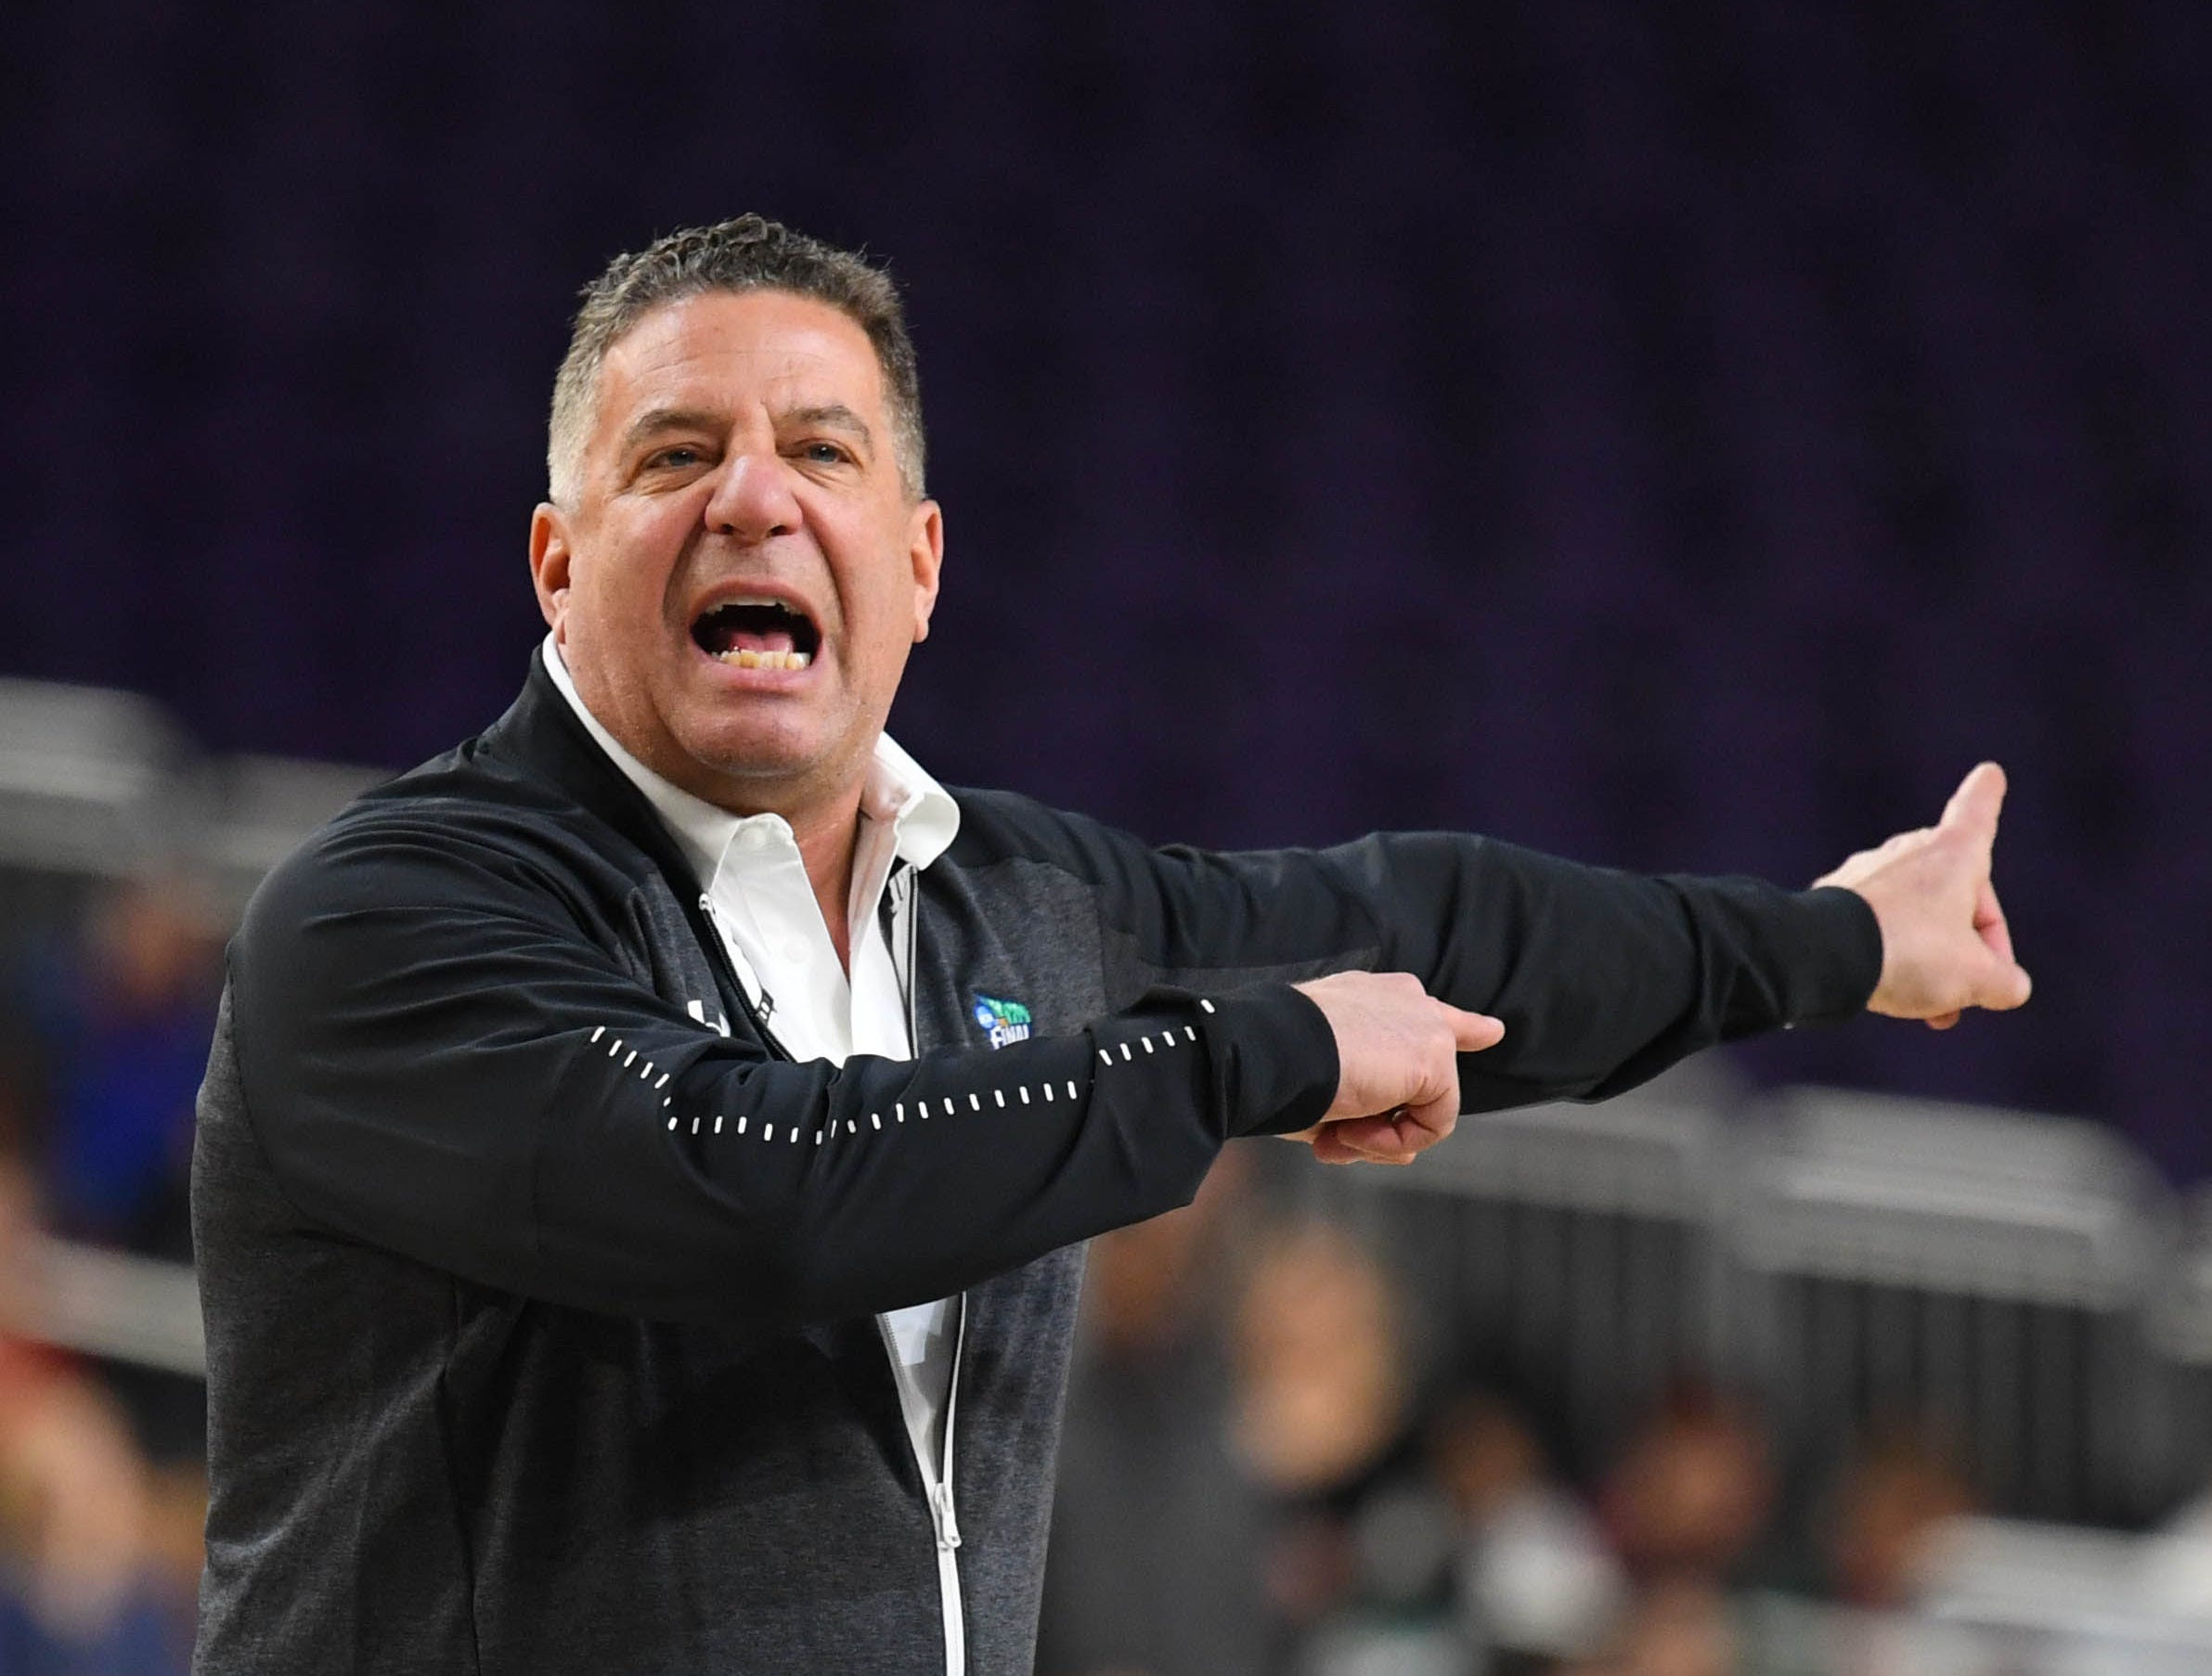 Apr 5, 2019; Minneapolis, MN, USA; Auburn Tigers head coach Bruce Pearl during practice for the 2019 men's Final Four at US Bank Stadium. Mandatory Credit: Robert Deutsch-USA TODAY Sports